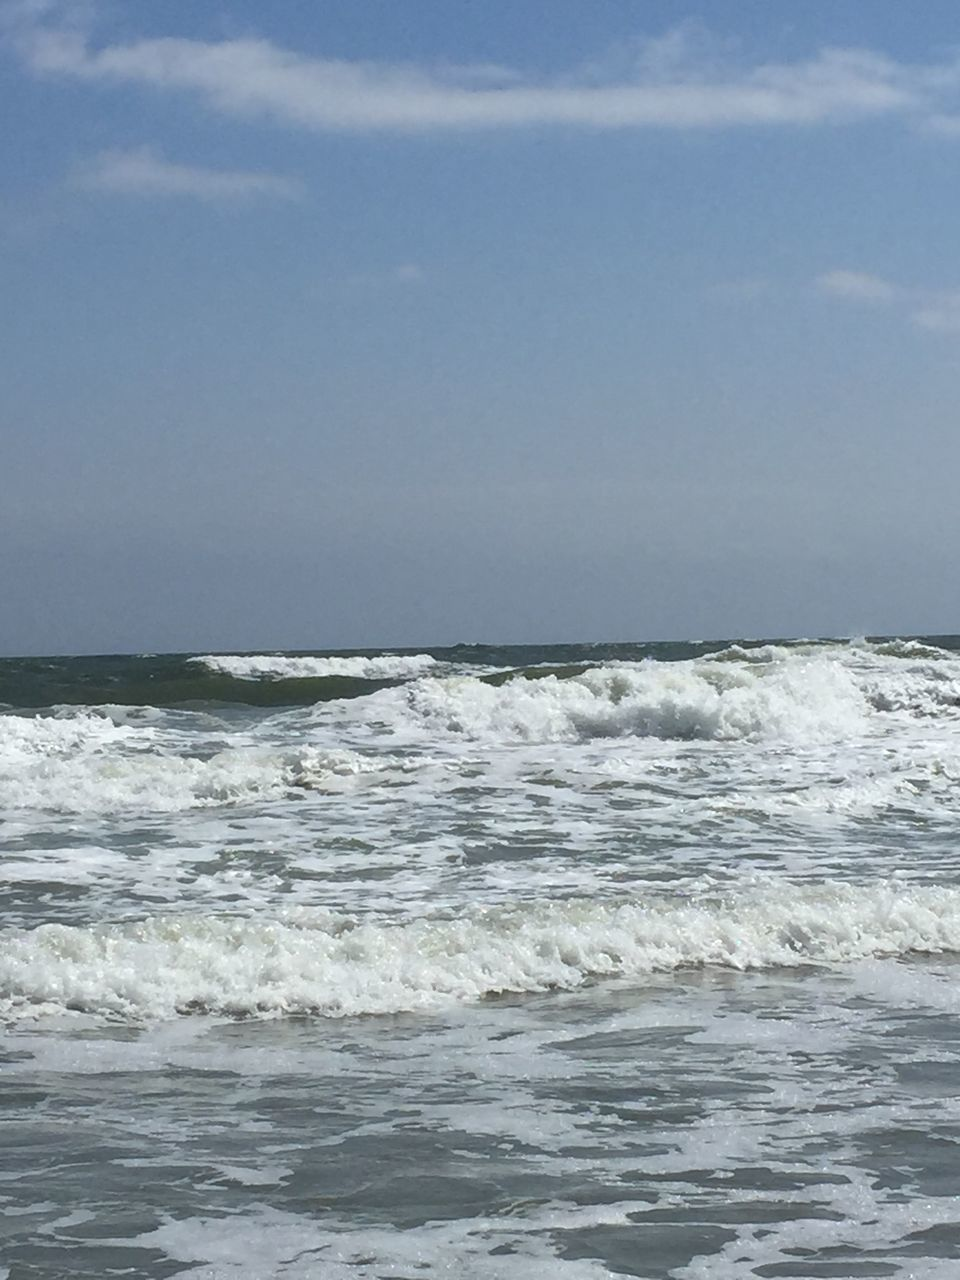 sea, nature, wave, beauty in nature, water, sky, no people, tranquility, scenery, outdoors, scenics, horizon over water, day, clear sky